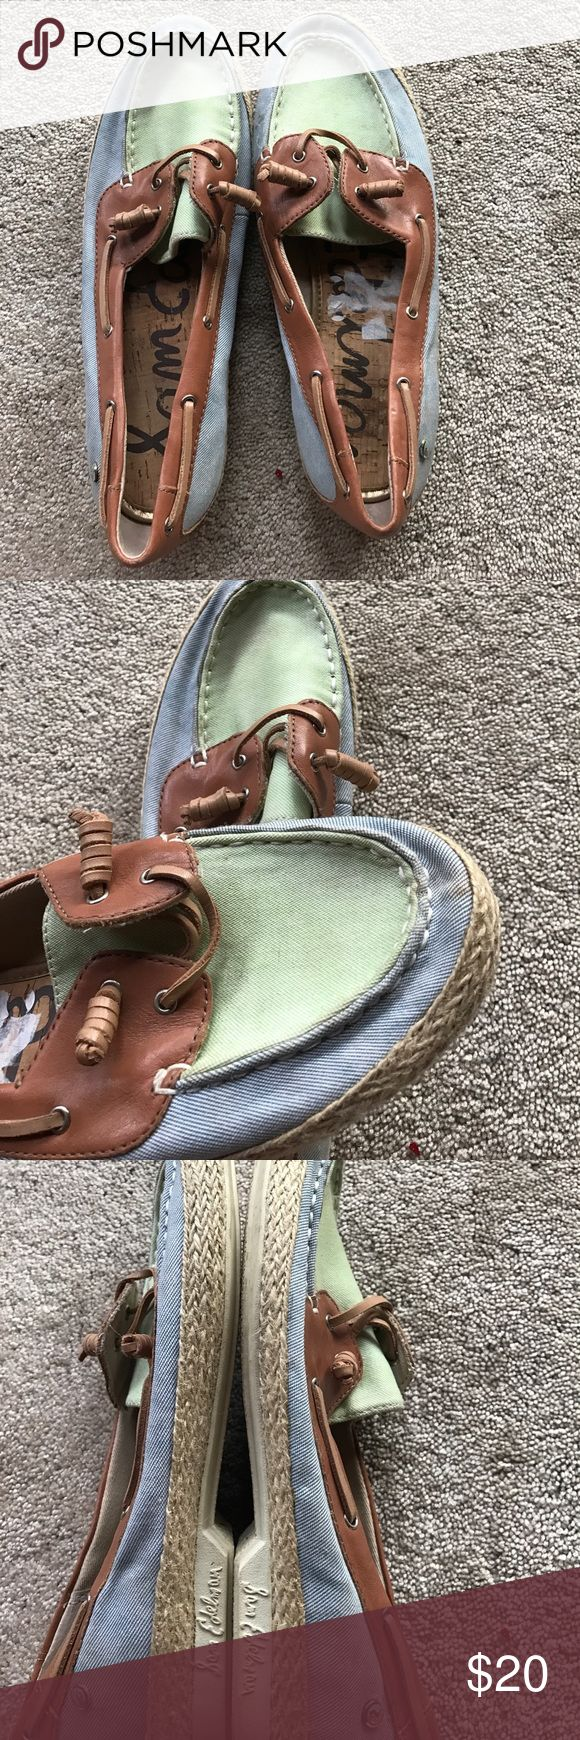 Boat shoes Green and blue boat shoes Sam Edelman Shoes